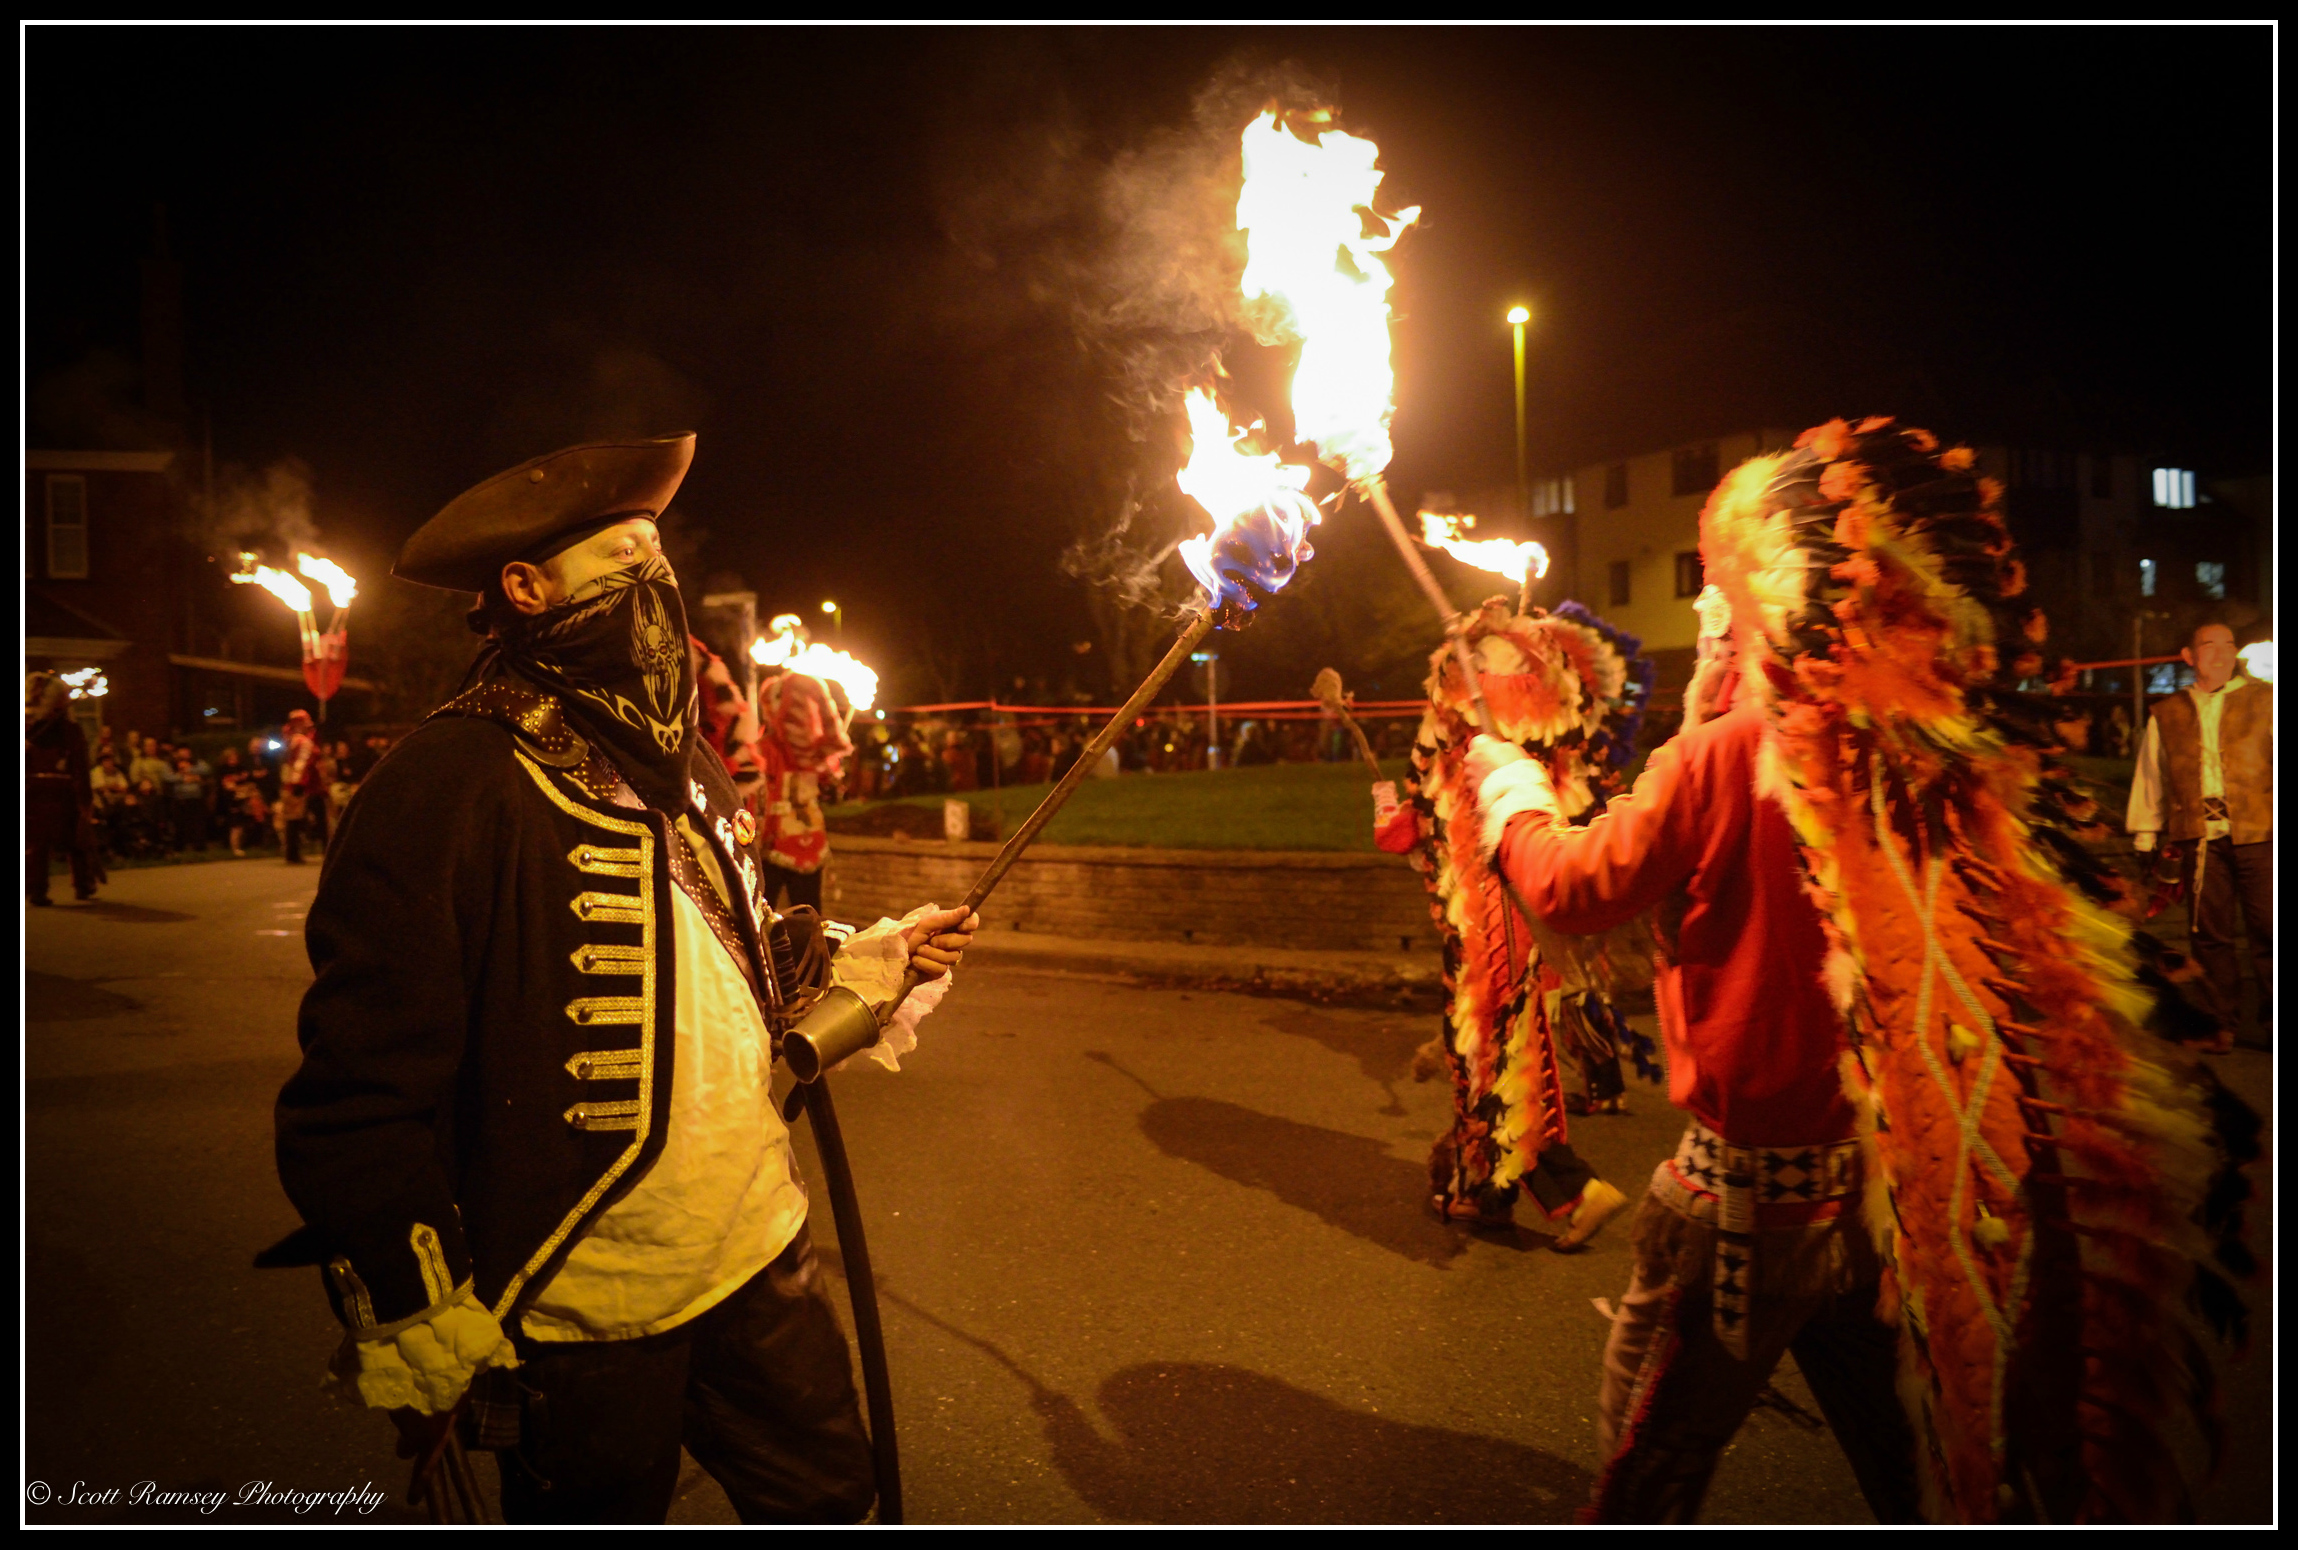 A member of the Eastbourne Bonfire Society holds a lit torch during the Littlehampton Bonfire Grand Torchlight Procession.